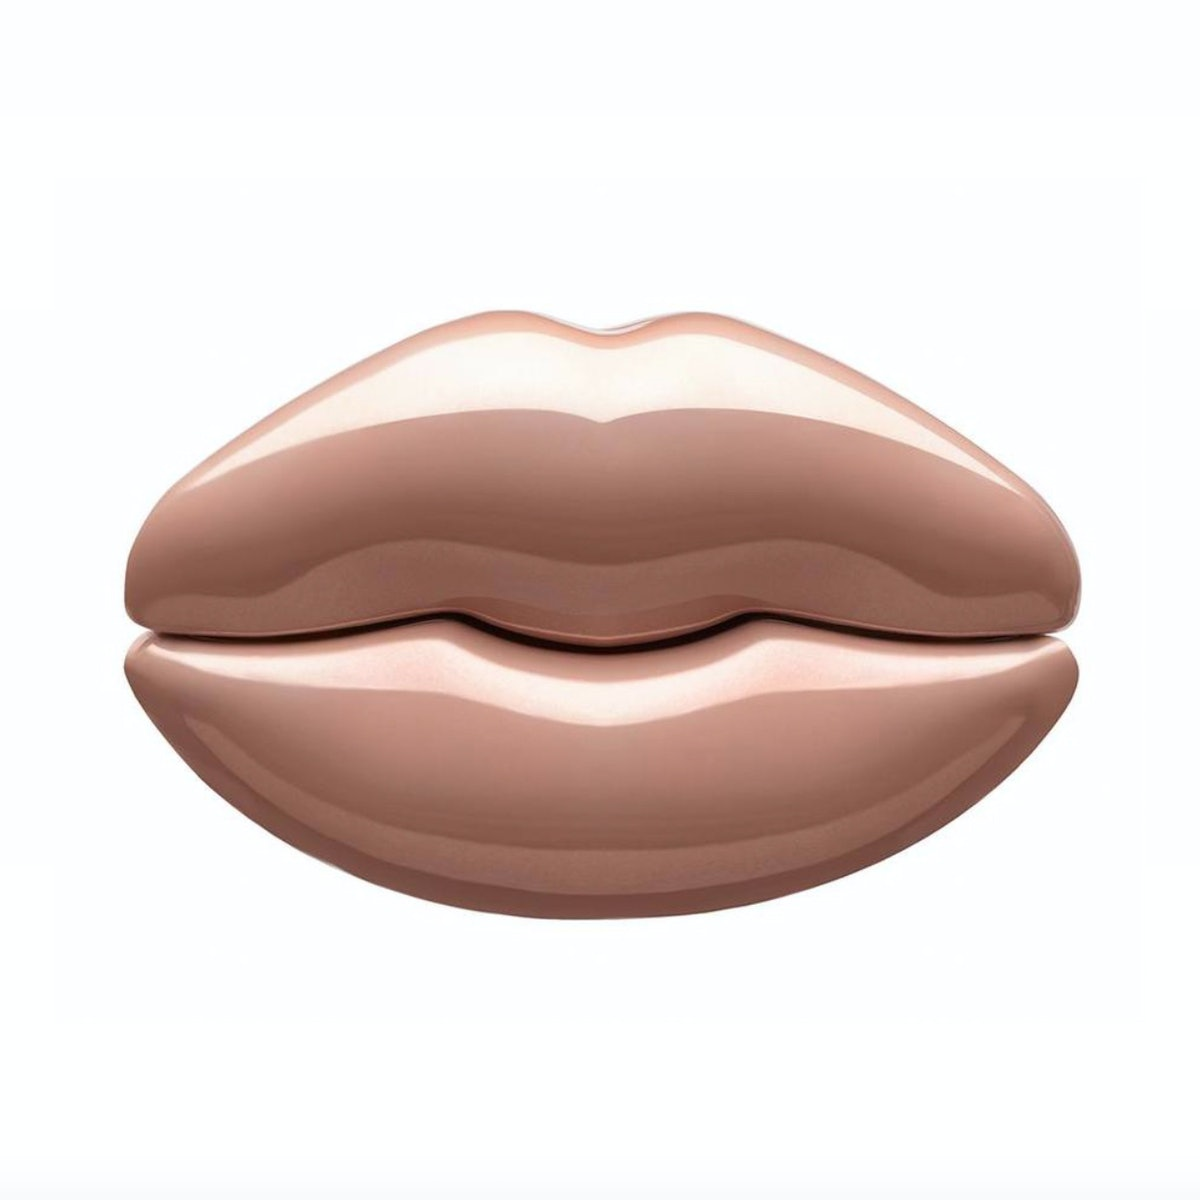 Kylie Jenner by KKW Fragrance Nude Lips Perfume